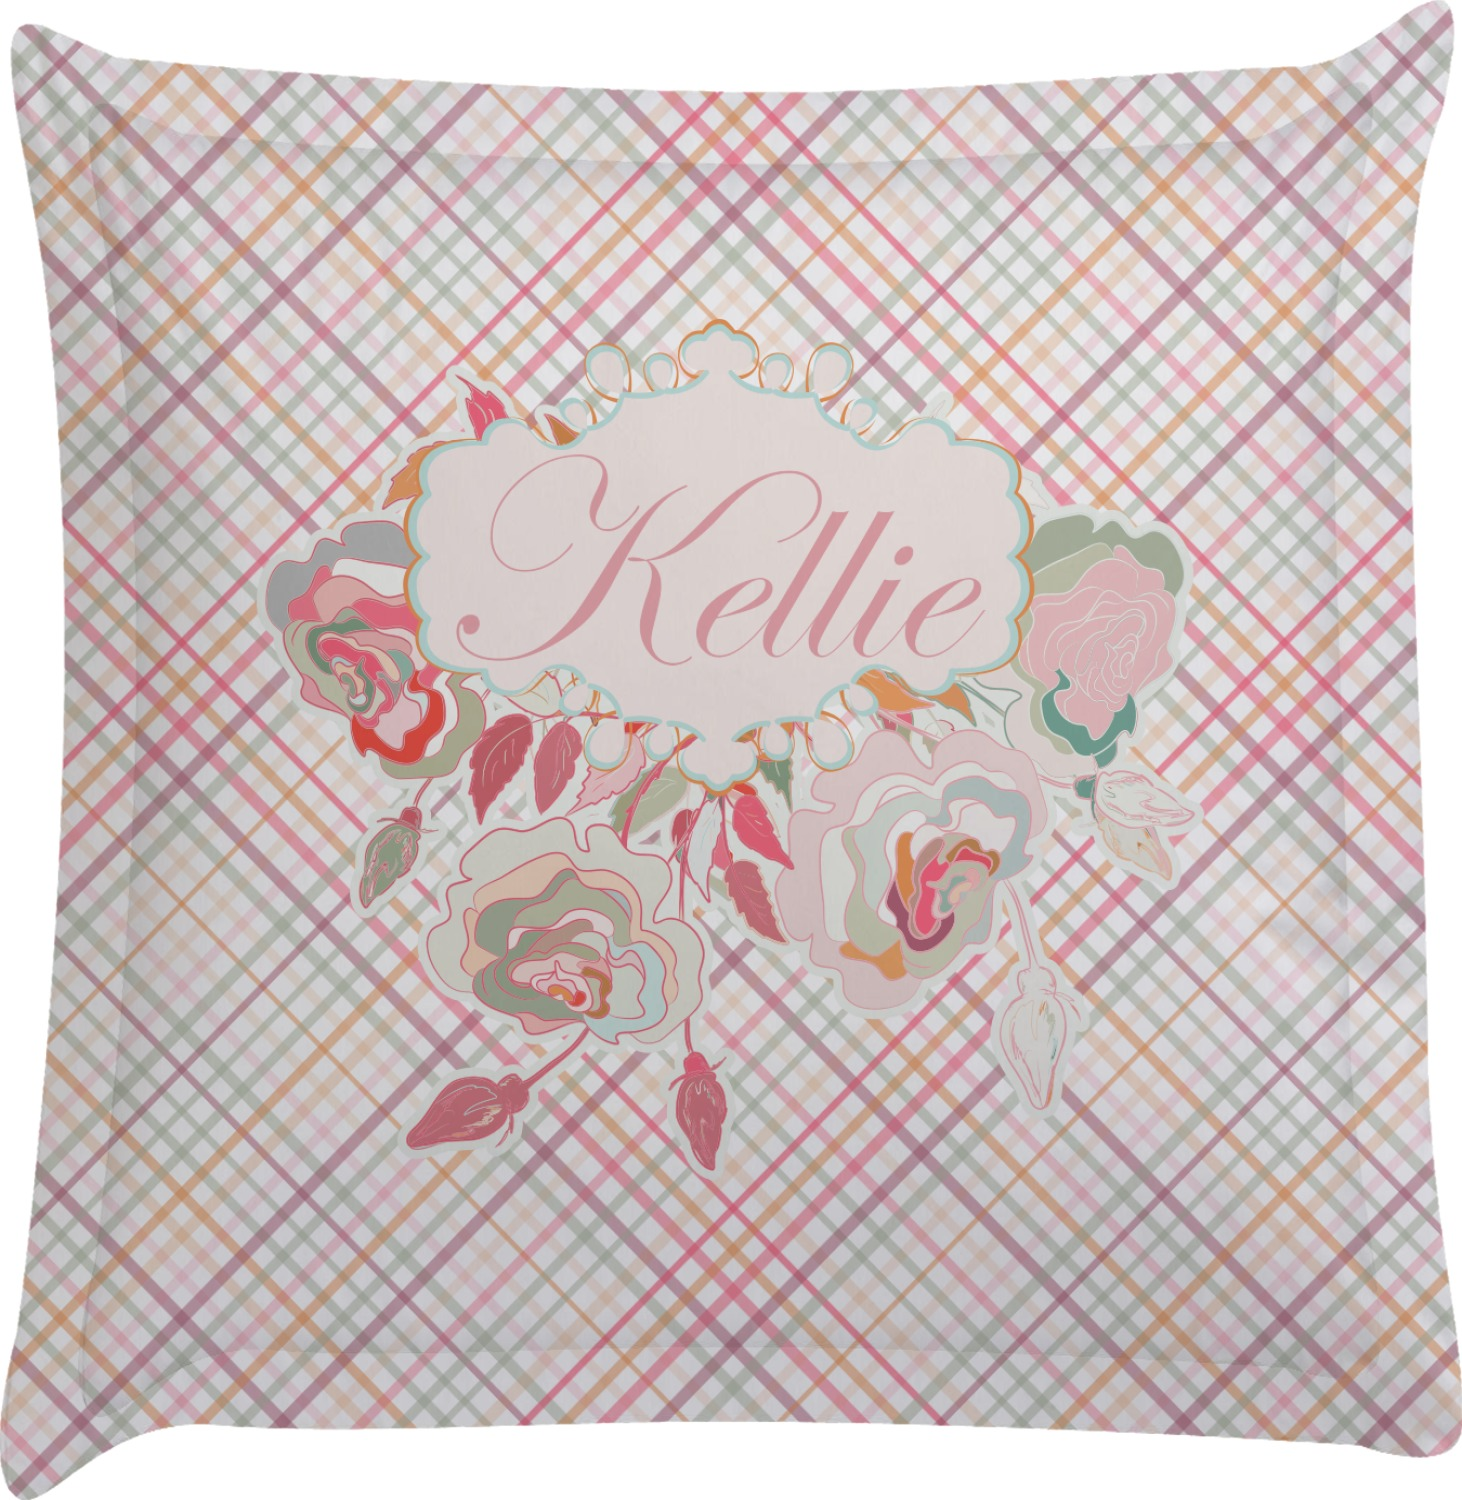 Modern Plaid & Floral Euro Sham Pillow Case (Personalized) - YouCustomizeIt